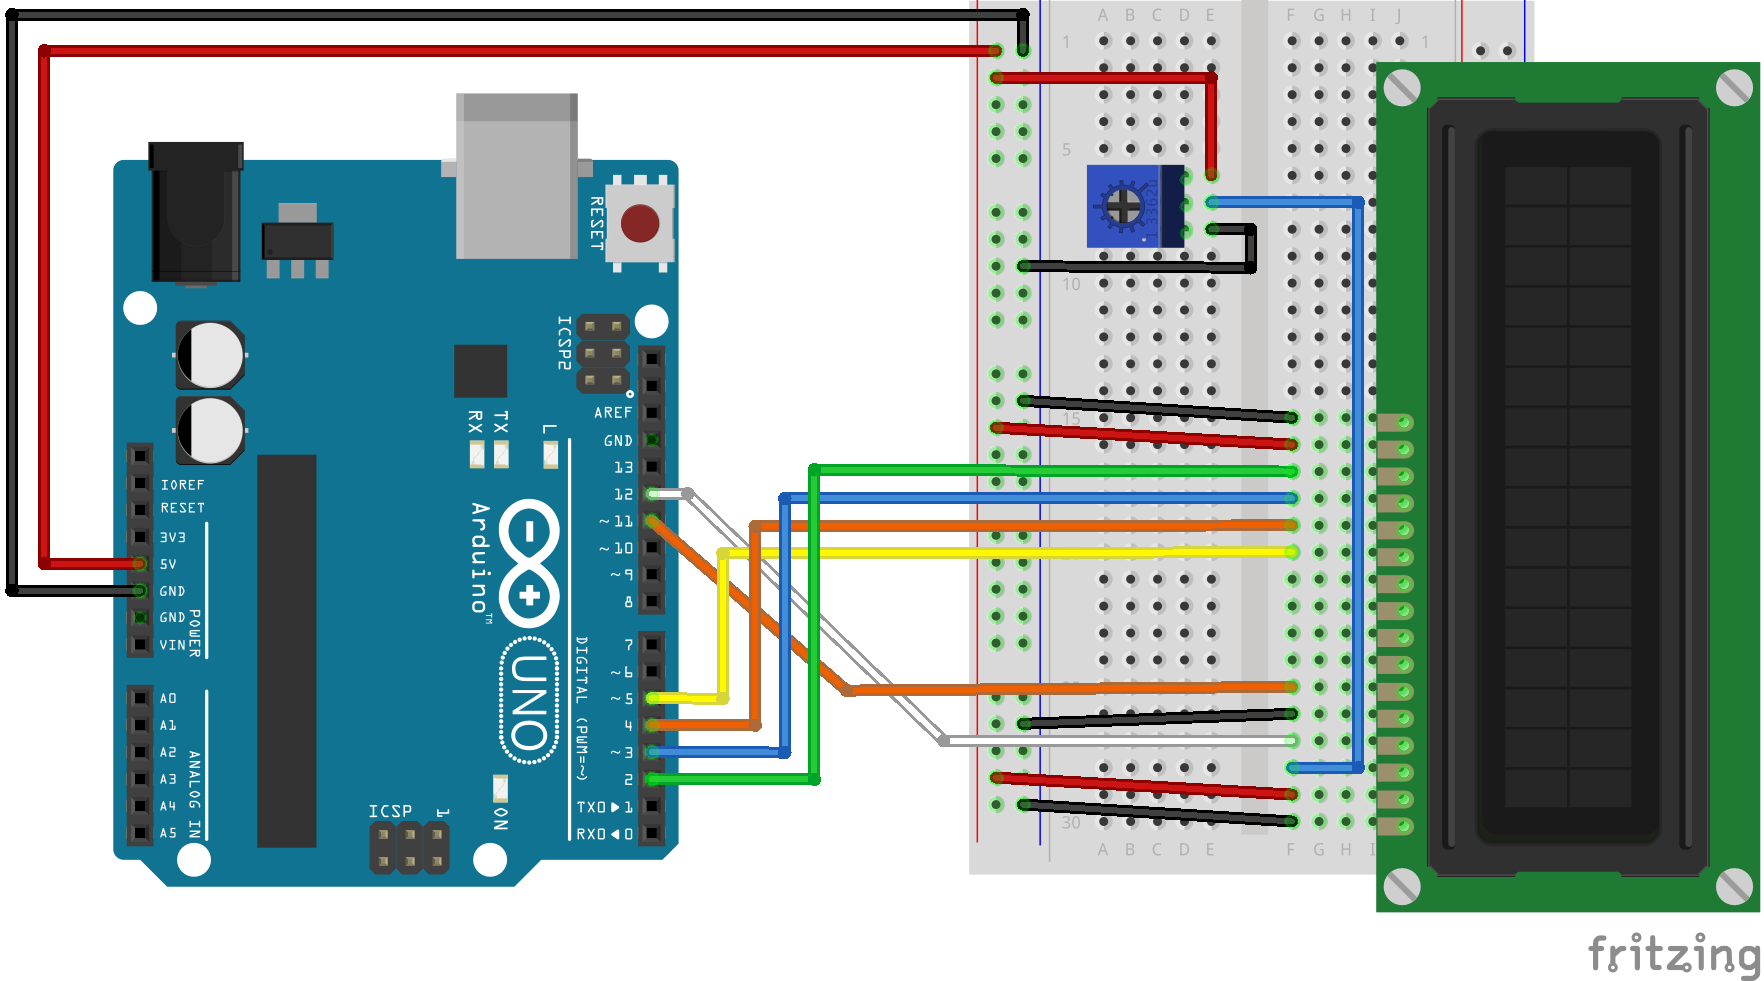 Displaying Web APIs on an Arduino LCD using Node js